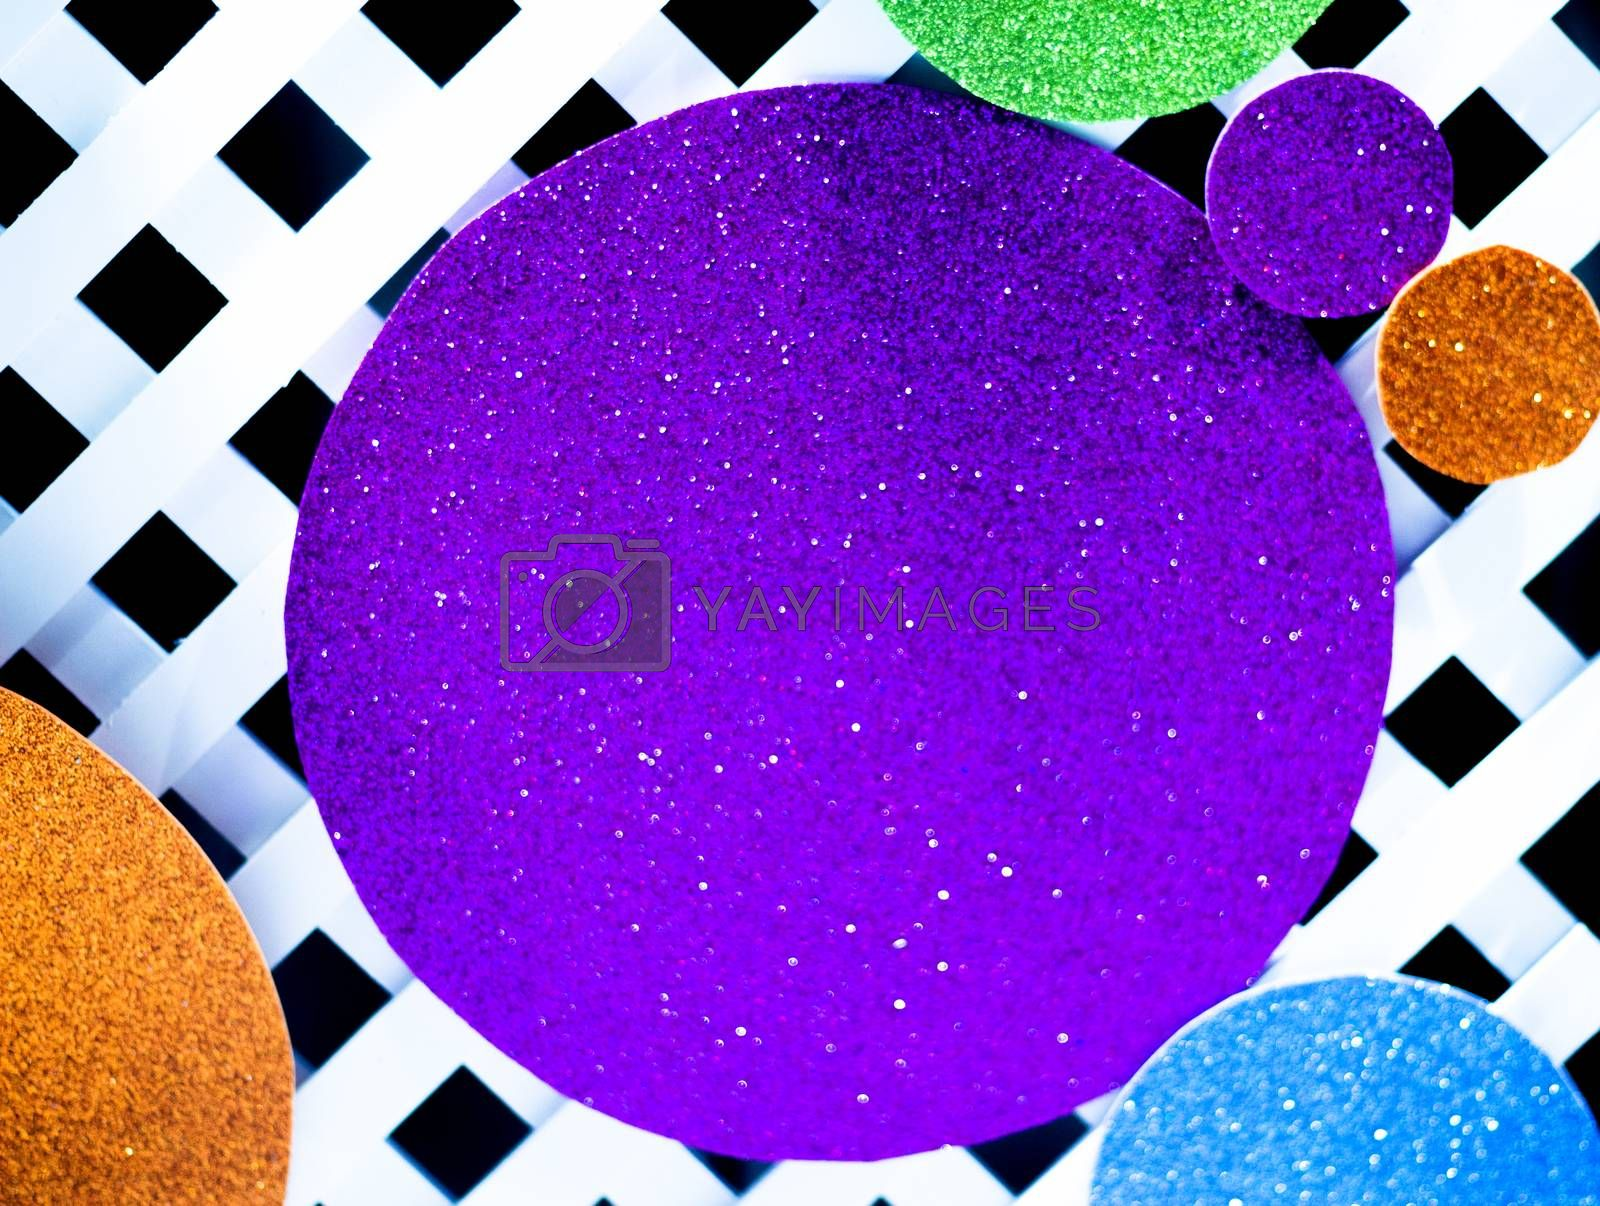 Abstract background with bright circles. No people